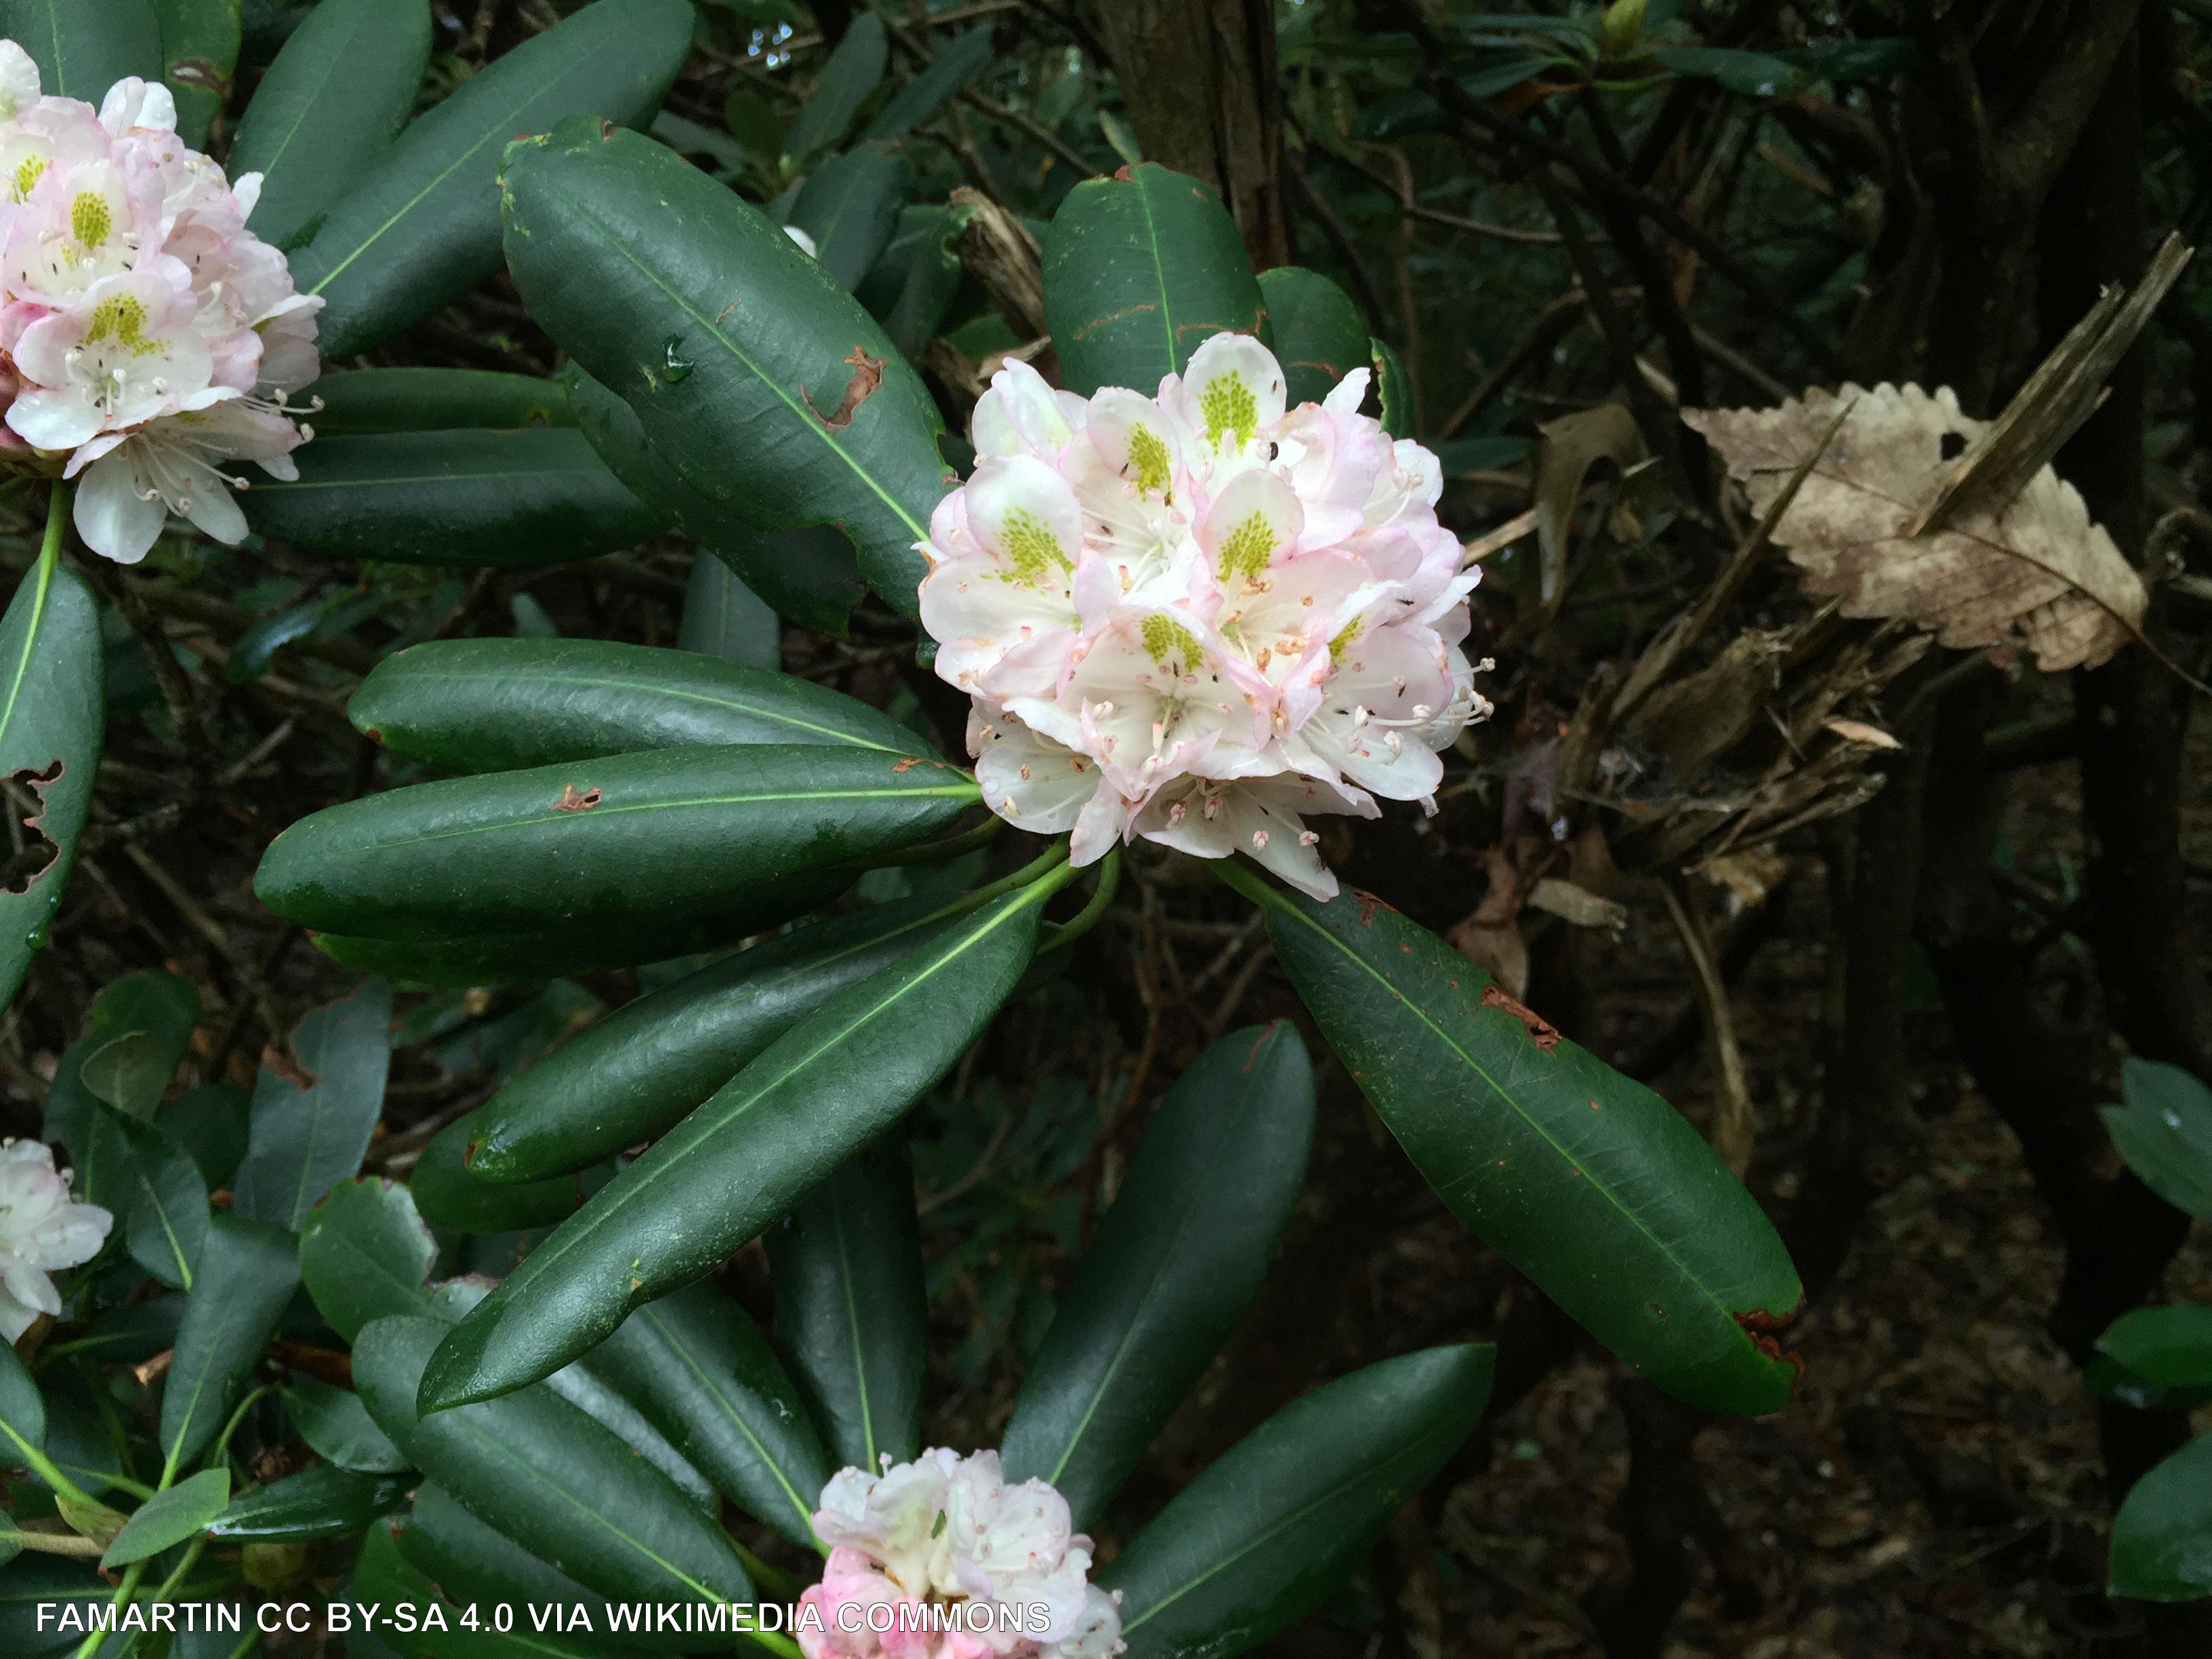 Bloom of light pink rhododendrons